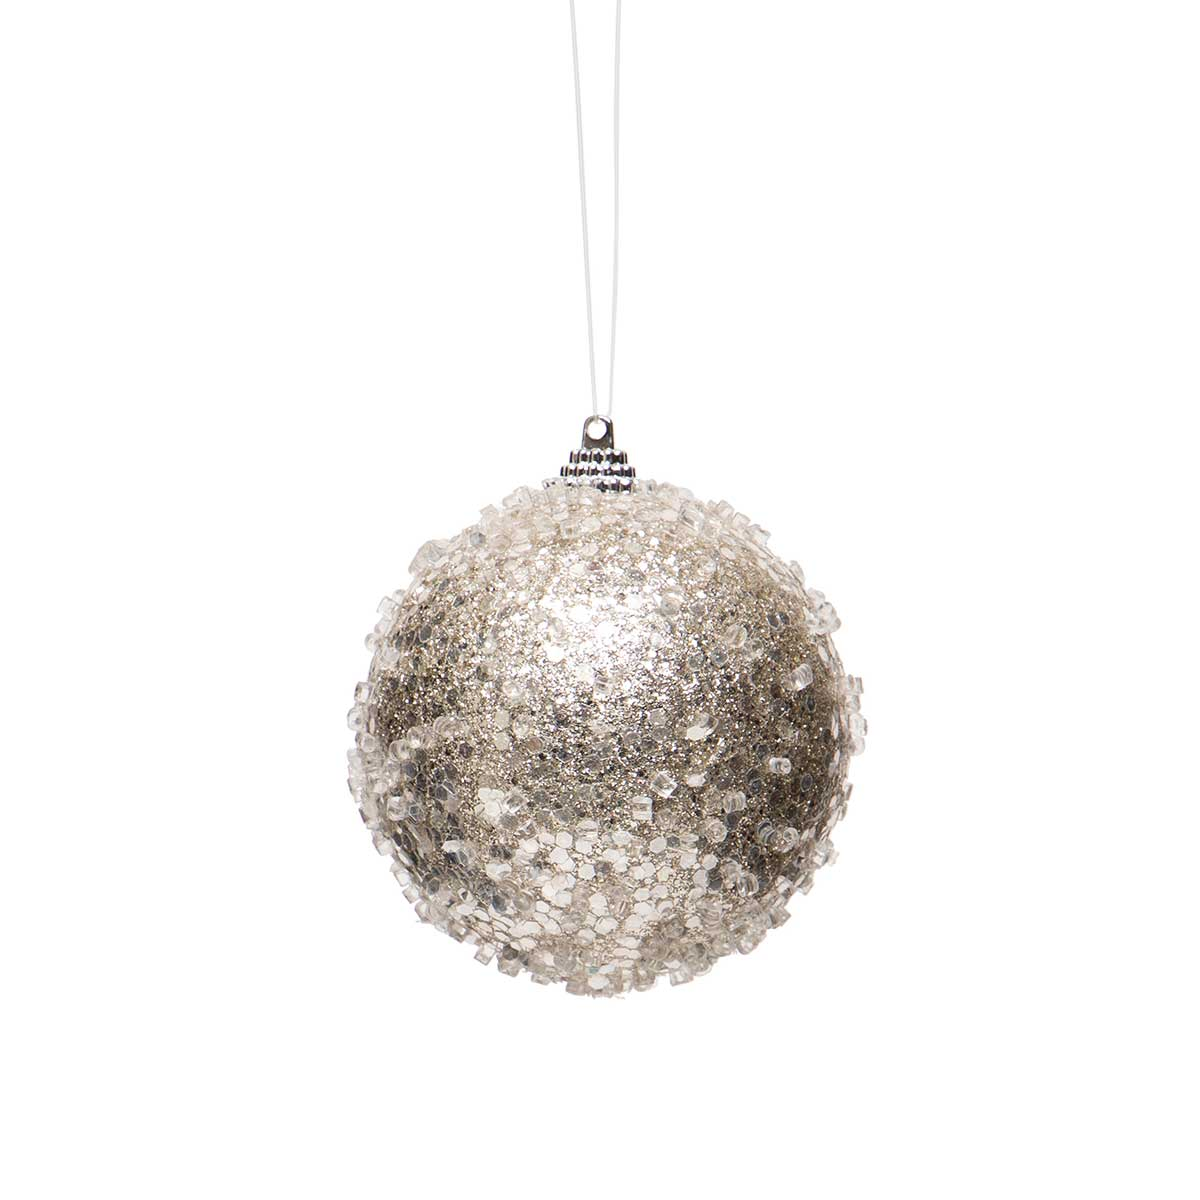 "PLATINUM ICE BALL ORNAMENT LARGE 5.5""X6"""